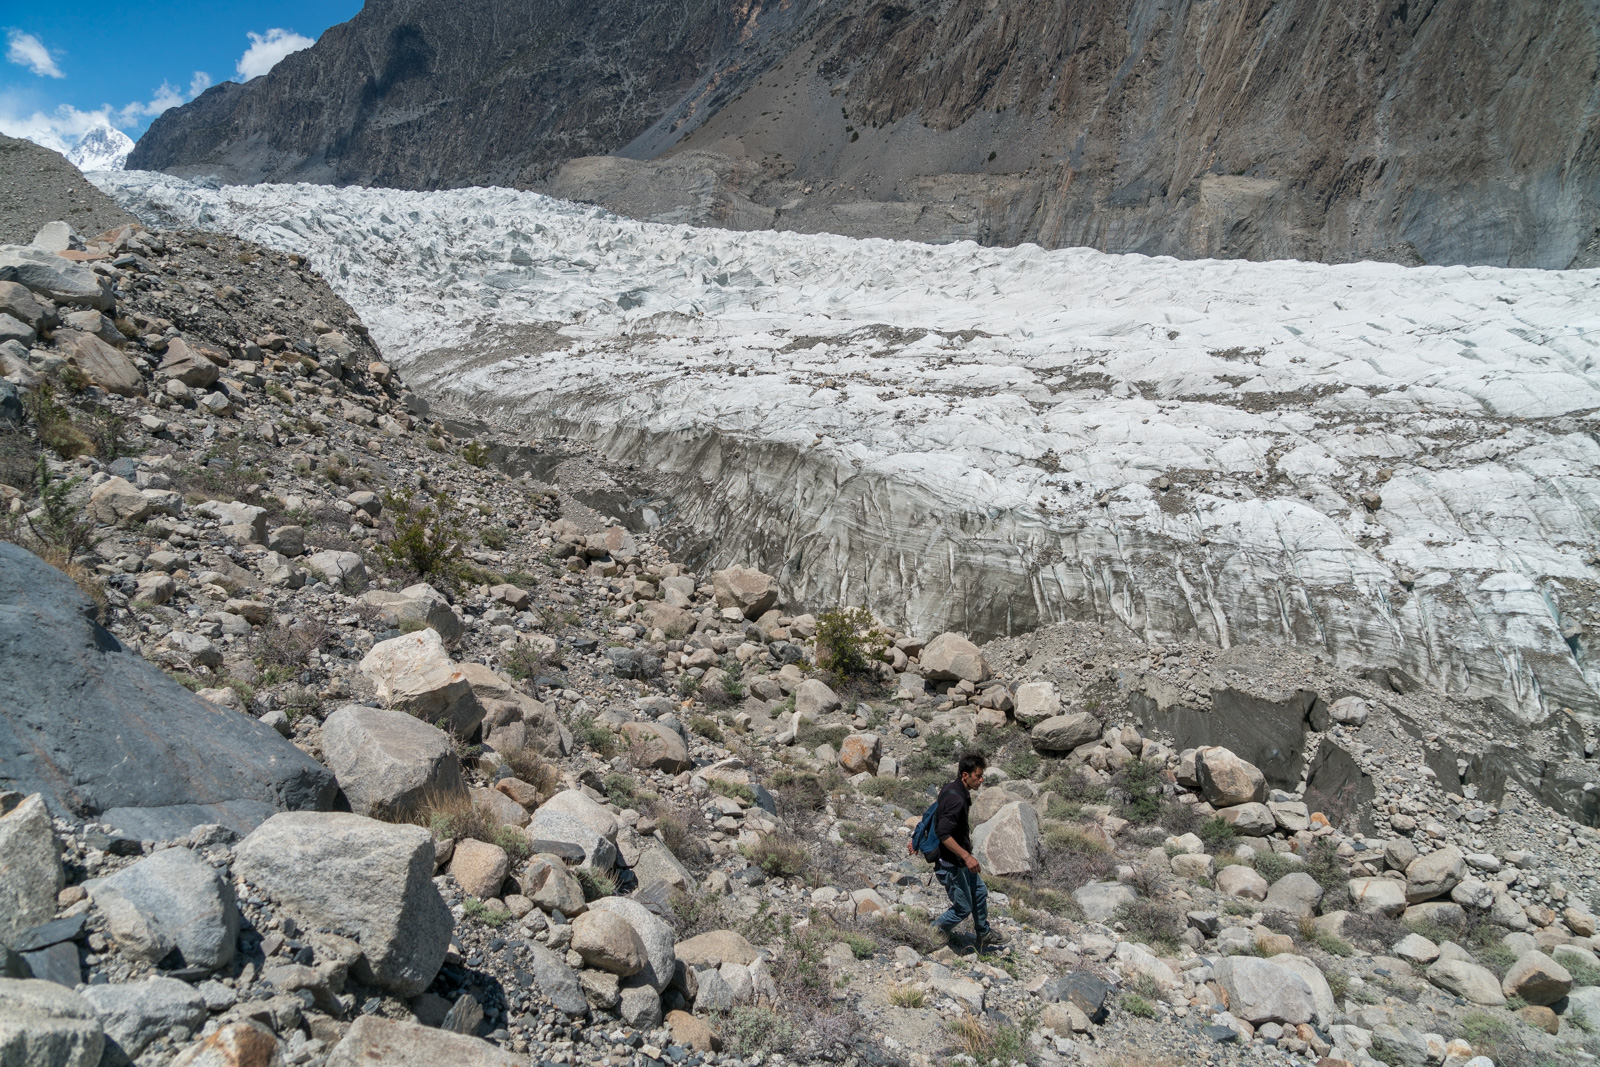 Homestay in Pakistan - Rehman looking for a path through loose rocks by Passu Glacier - Lost With Purpose travel blog